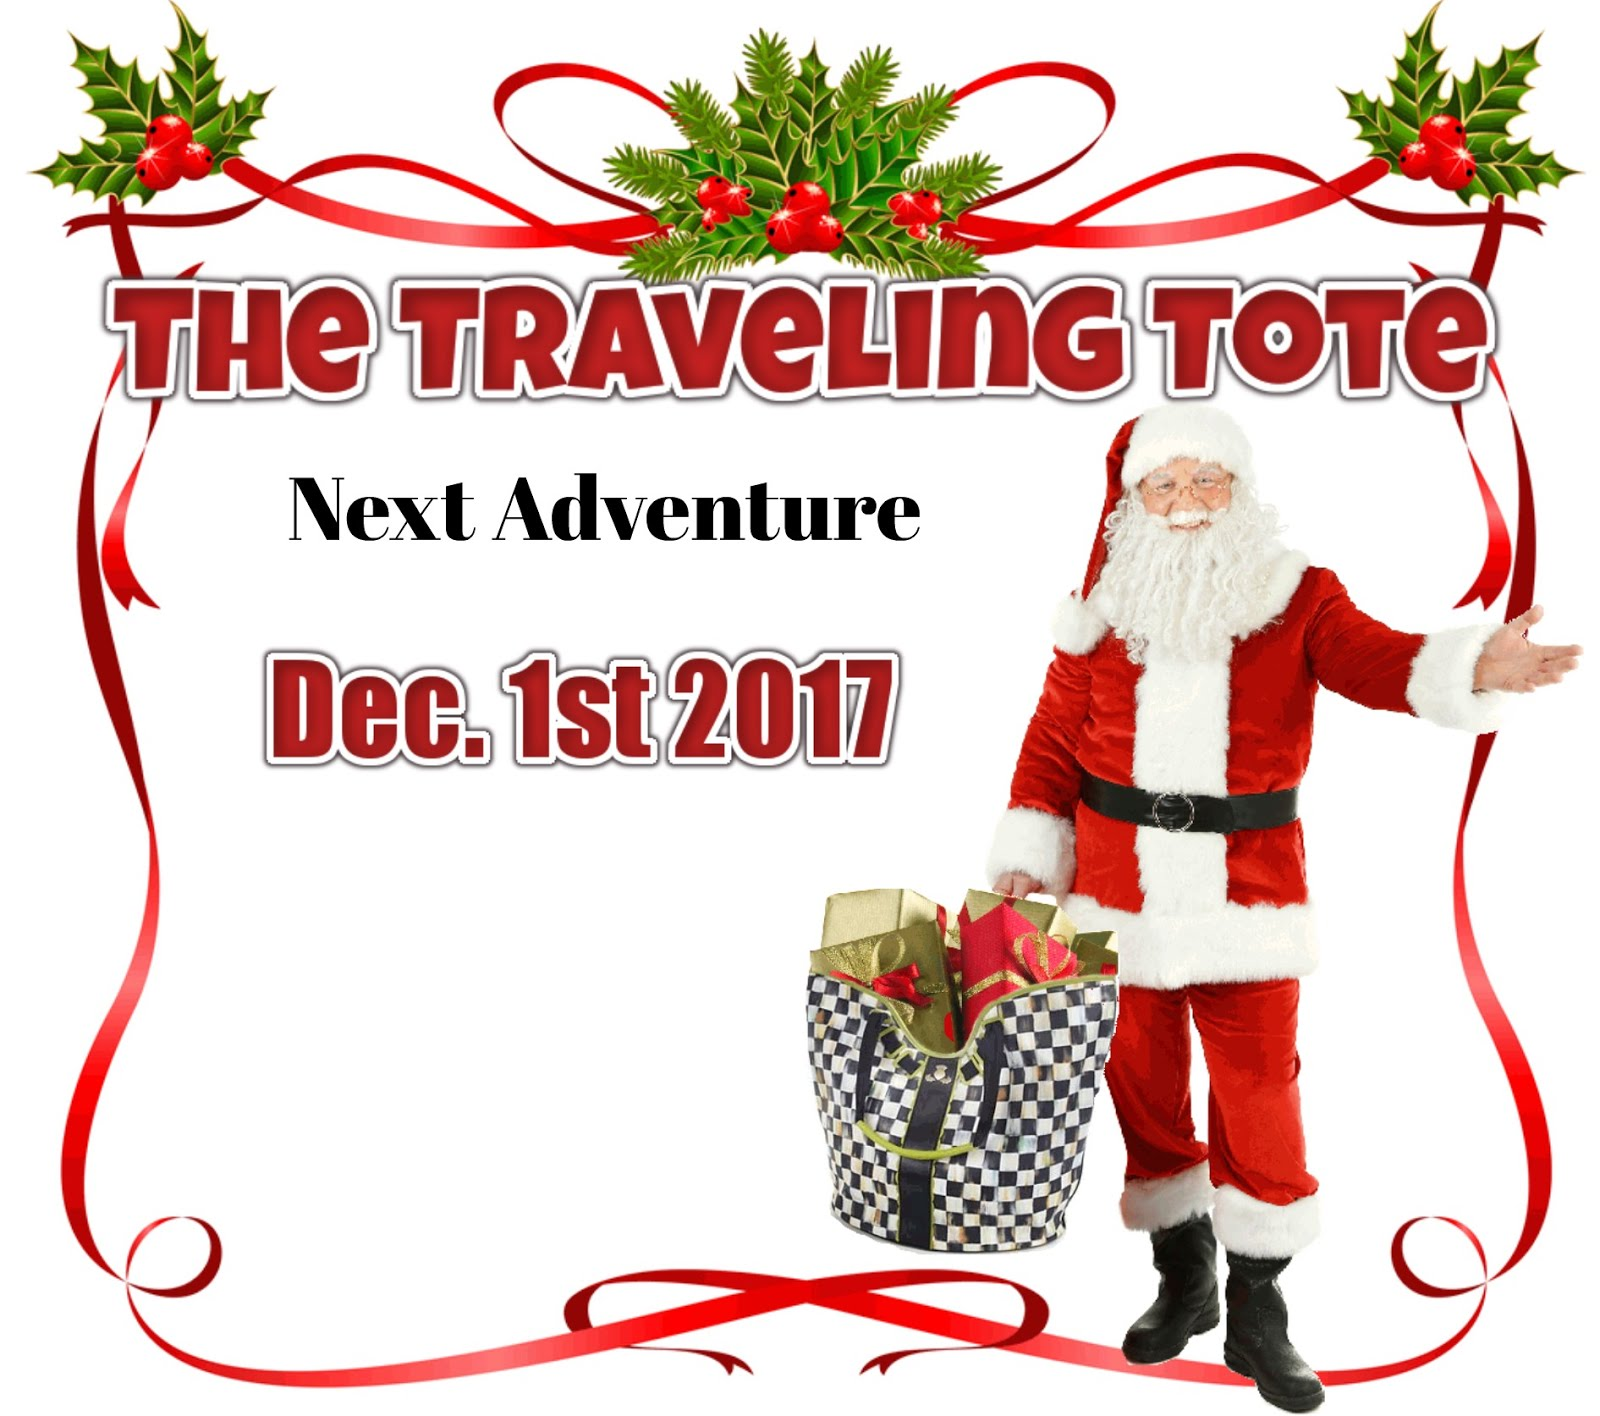 The Traveling Tote